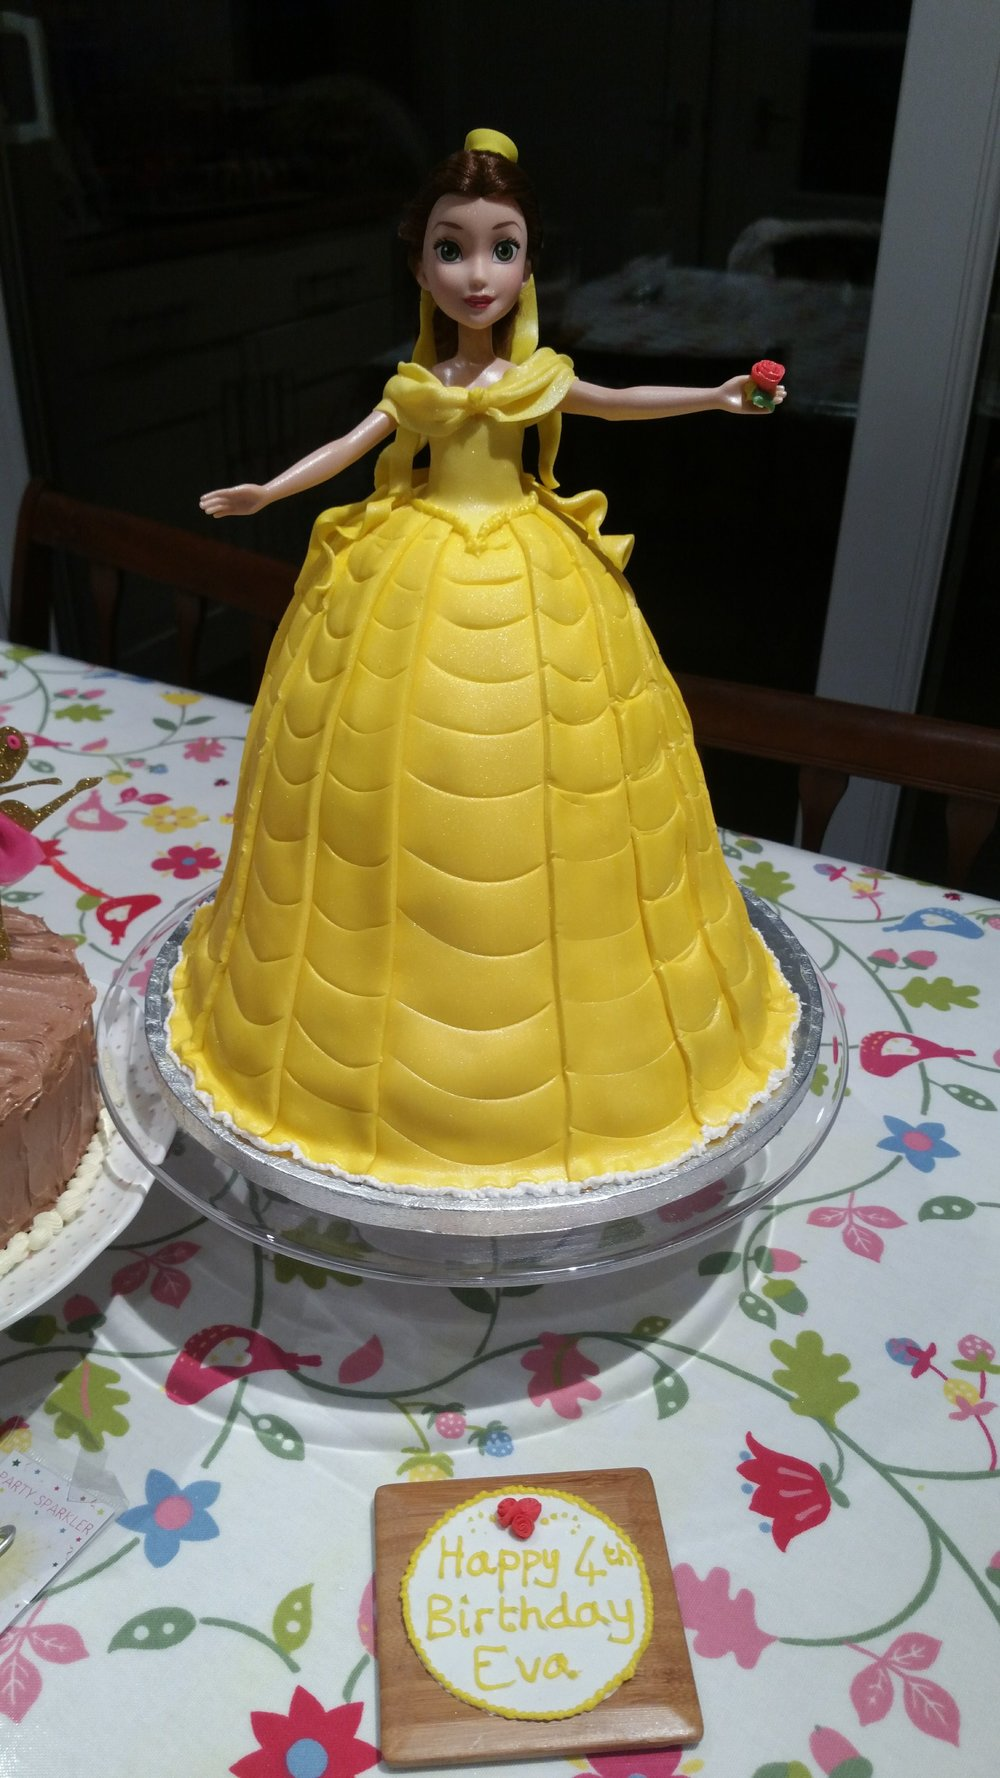 Made by my student - This beautiful Belle cake was made by my student for her daughter during our special bespoke course.  In one evening we made this cake together, with my guidance, she made a wonderful cake for her thrilled daughter to enjoy with her friends that weekend.Please ask for details on courses.  I am happy to help.